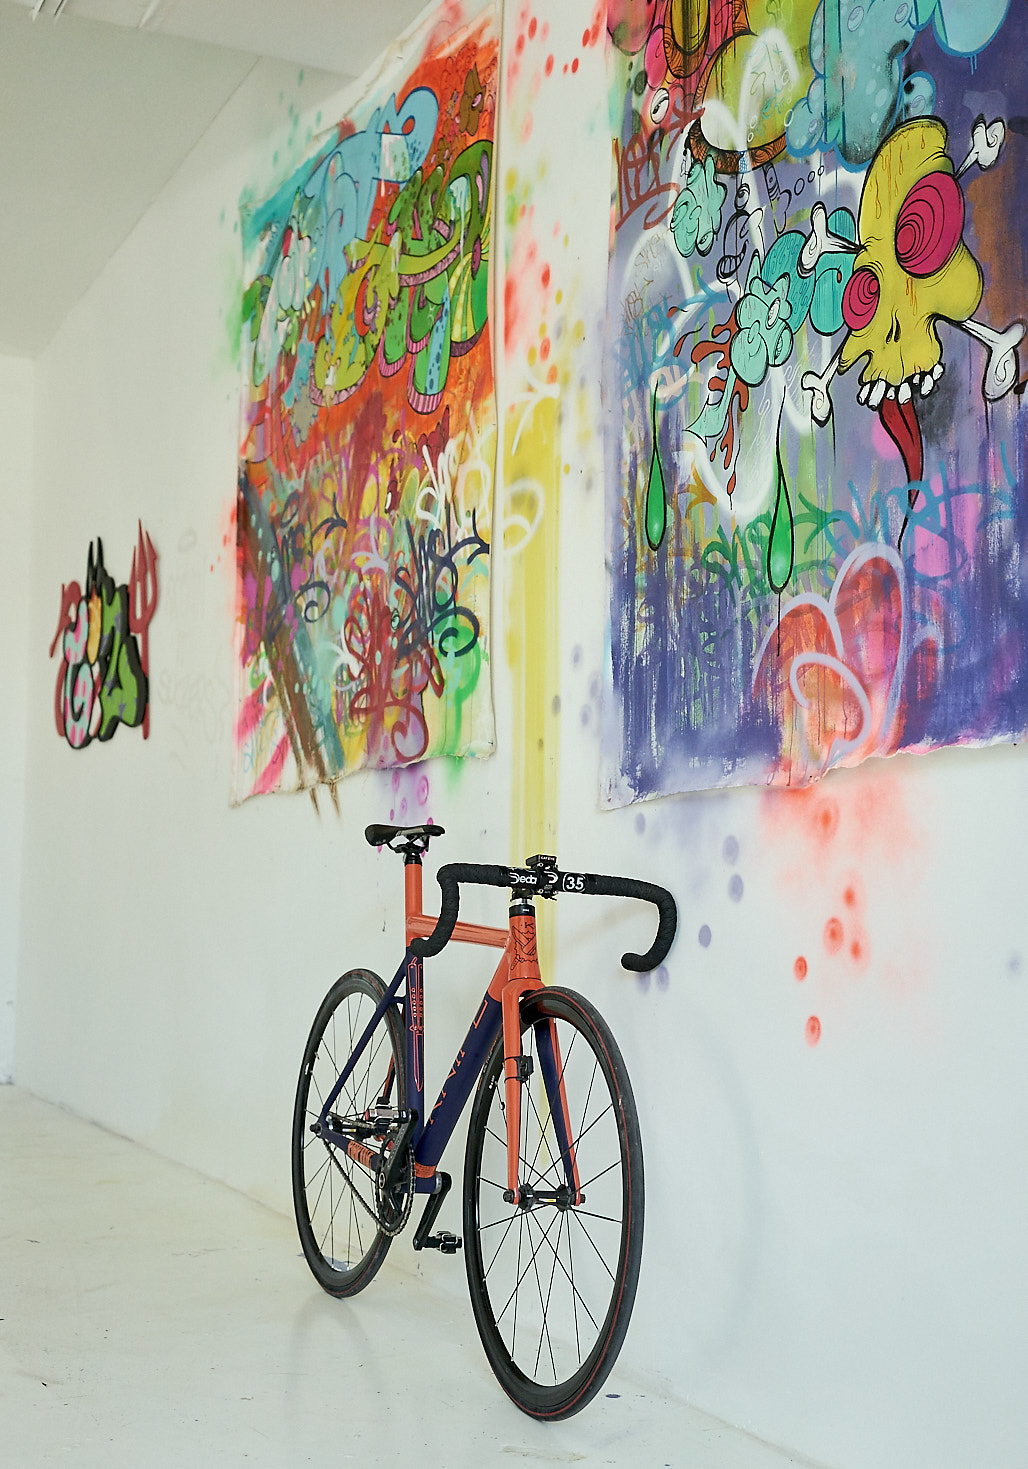 Hausammann_Gallery_Knife_Bike_Miami_JRomero_Wordintown_Wynwood_Jan_2017_9